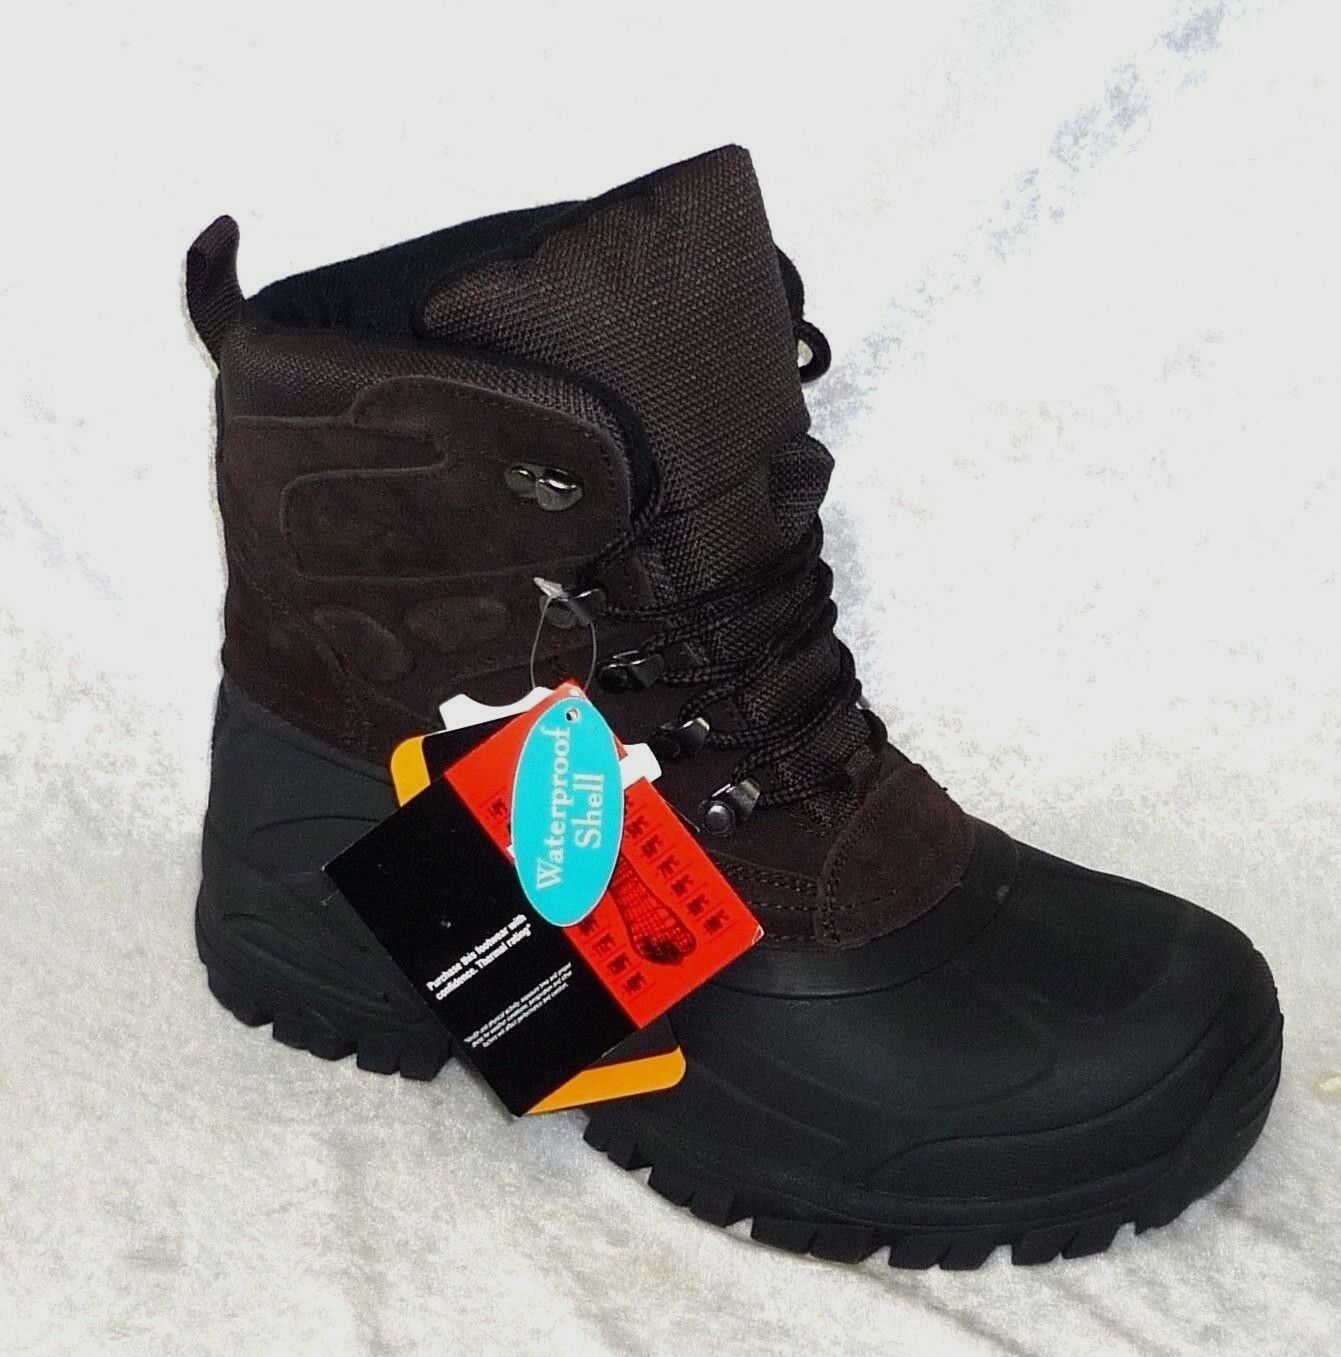 Weatherproof Thinsulate Mens Range Boots Leather size 8 9 10 10.5 NEW